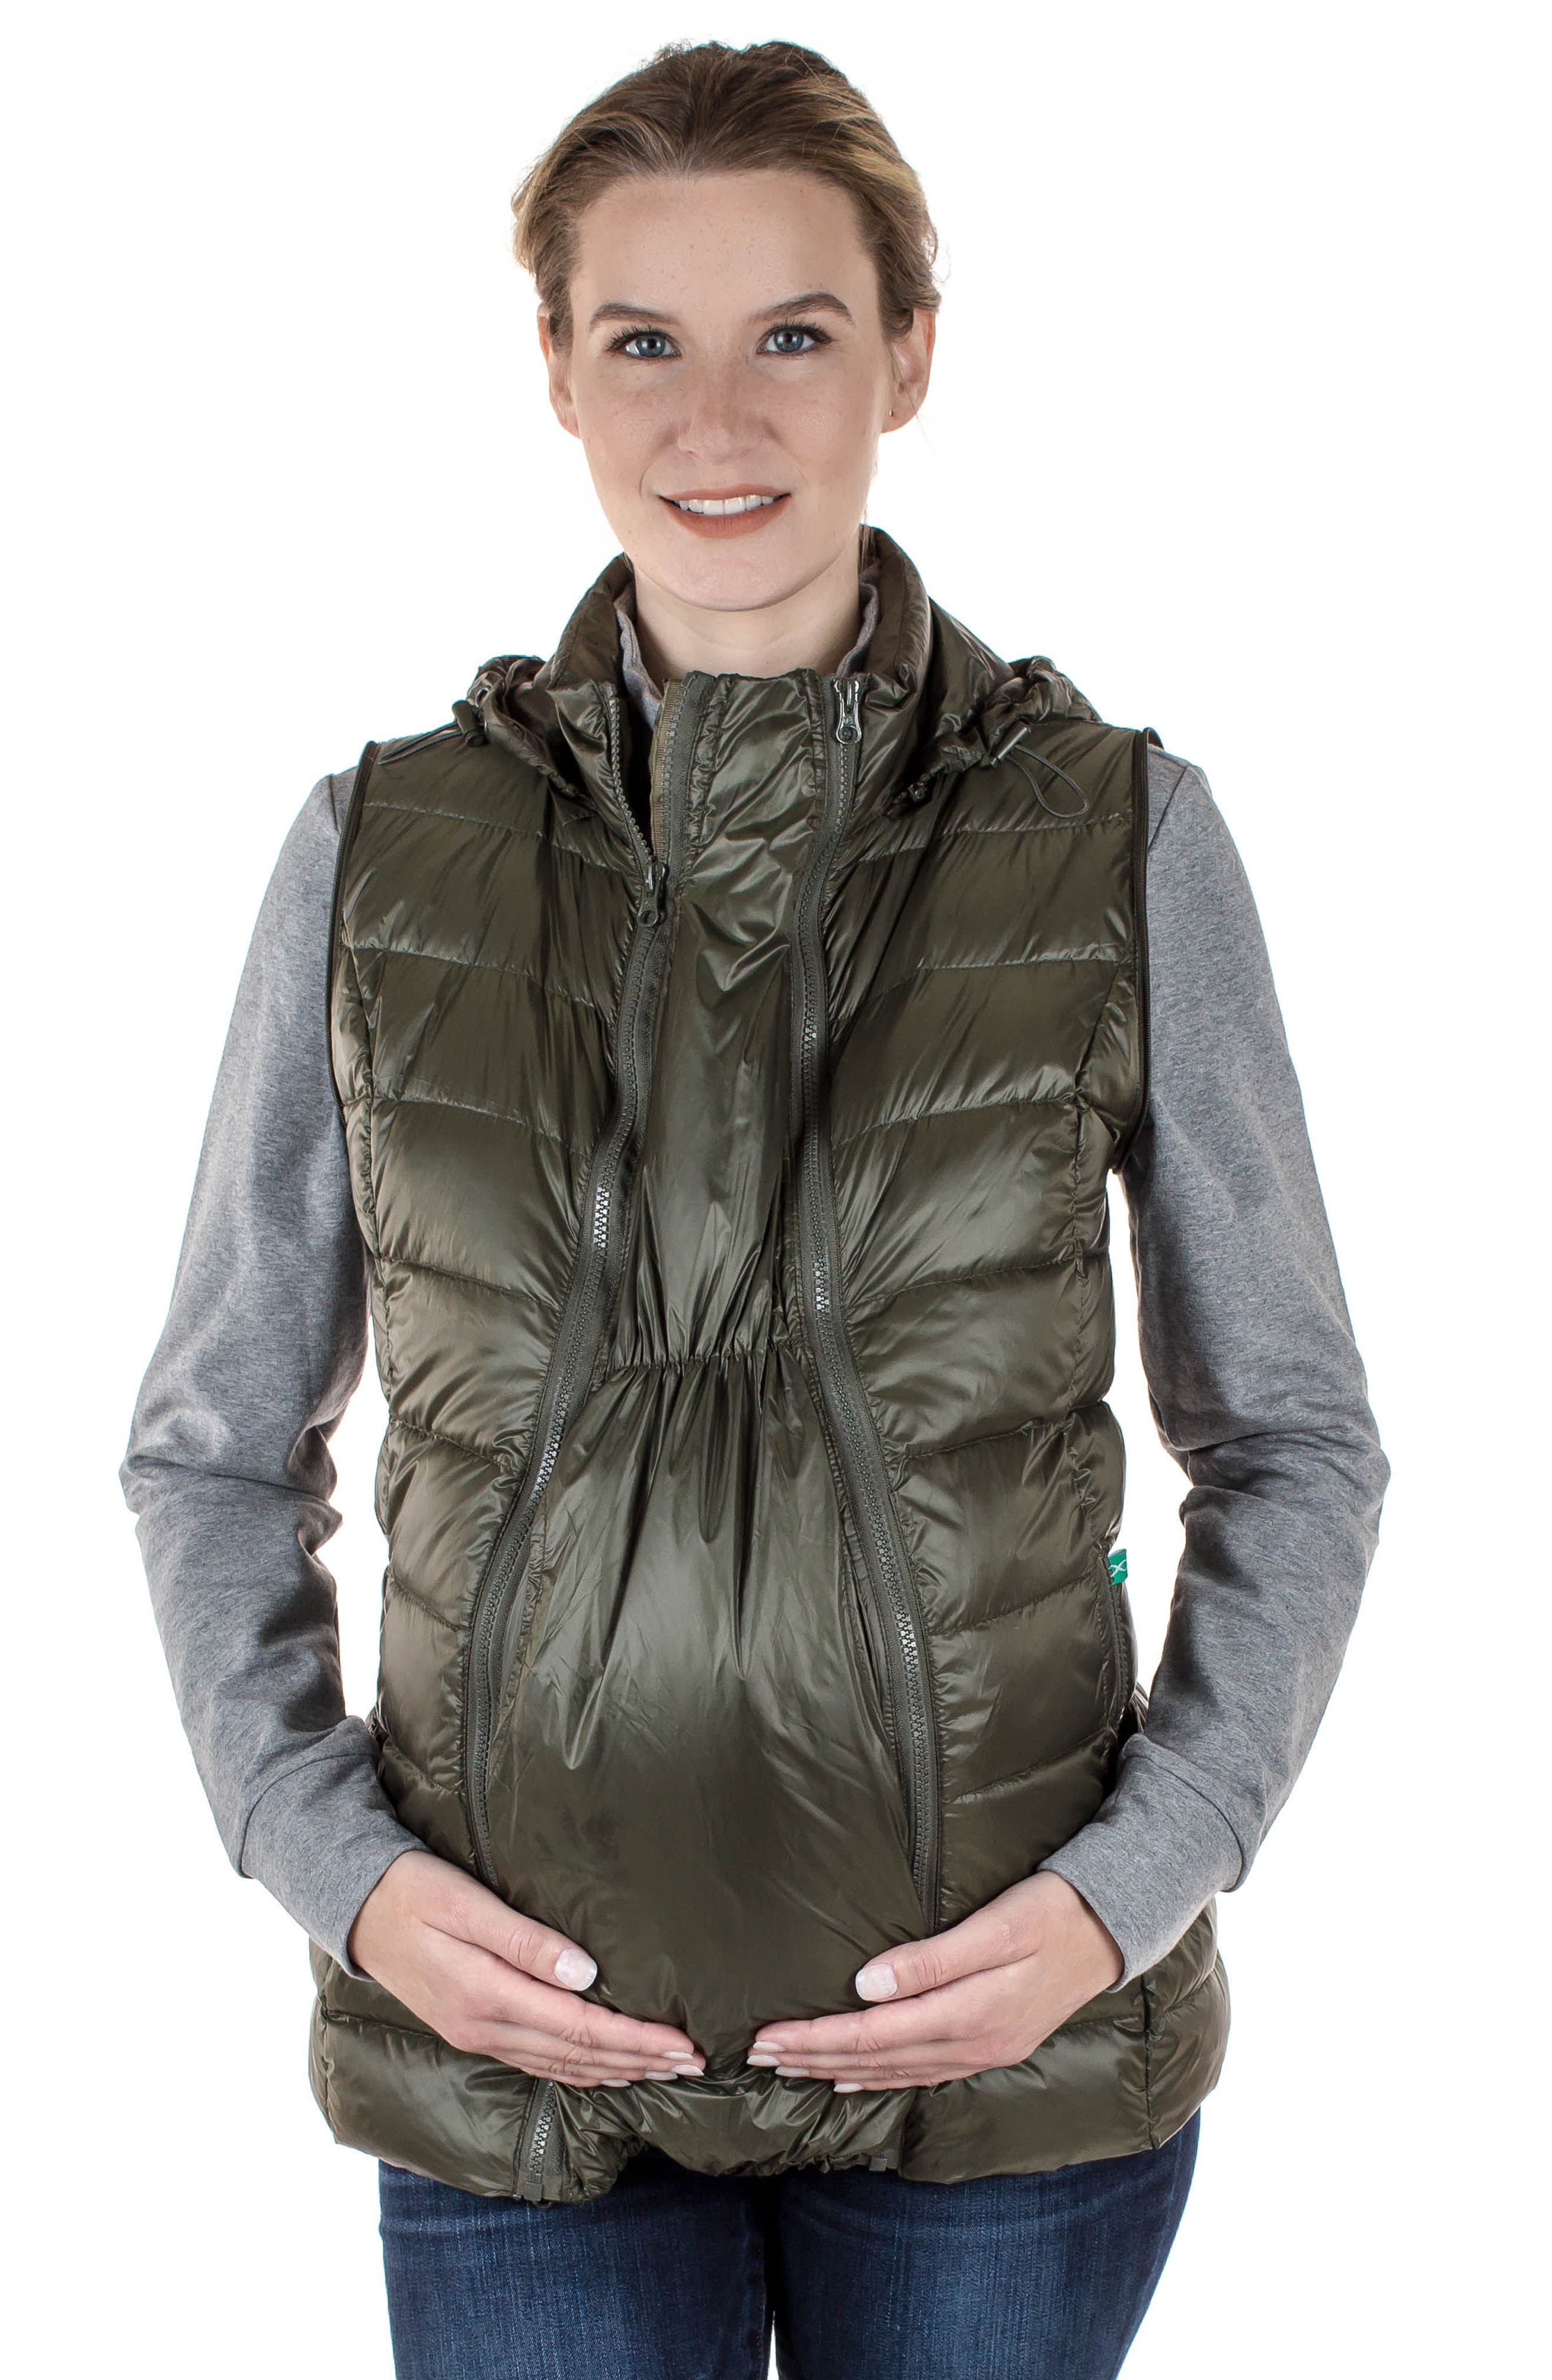 Lightweight Puffer Convertible 3-in-1 Maternity Jacket,                             Alternate thumbnail 11, color,                             KHAKI GREEN